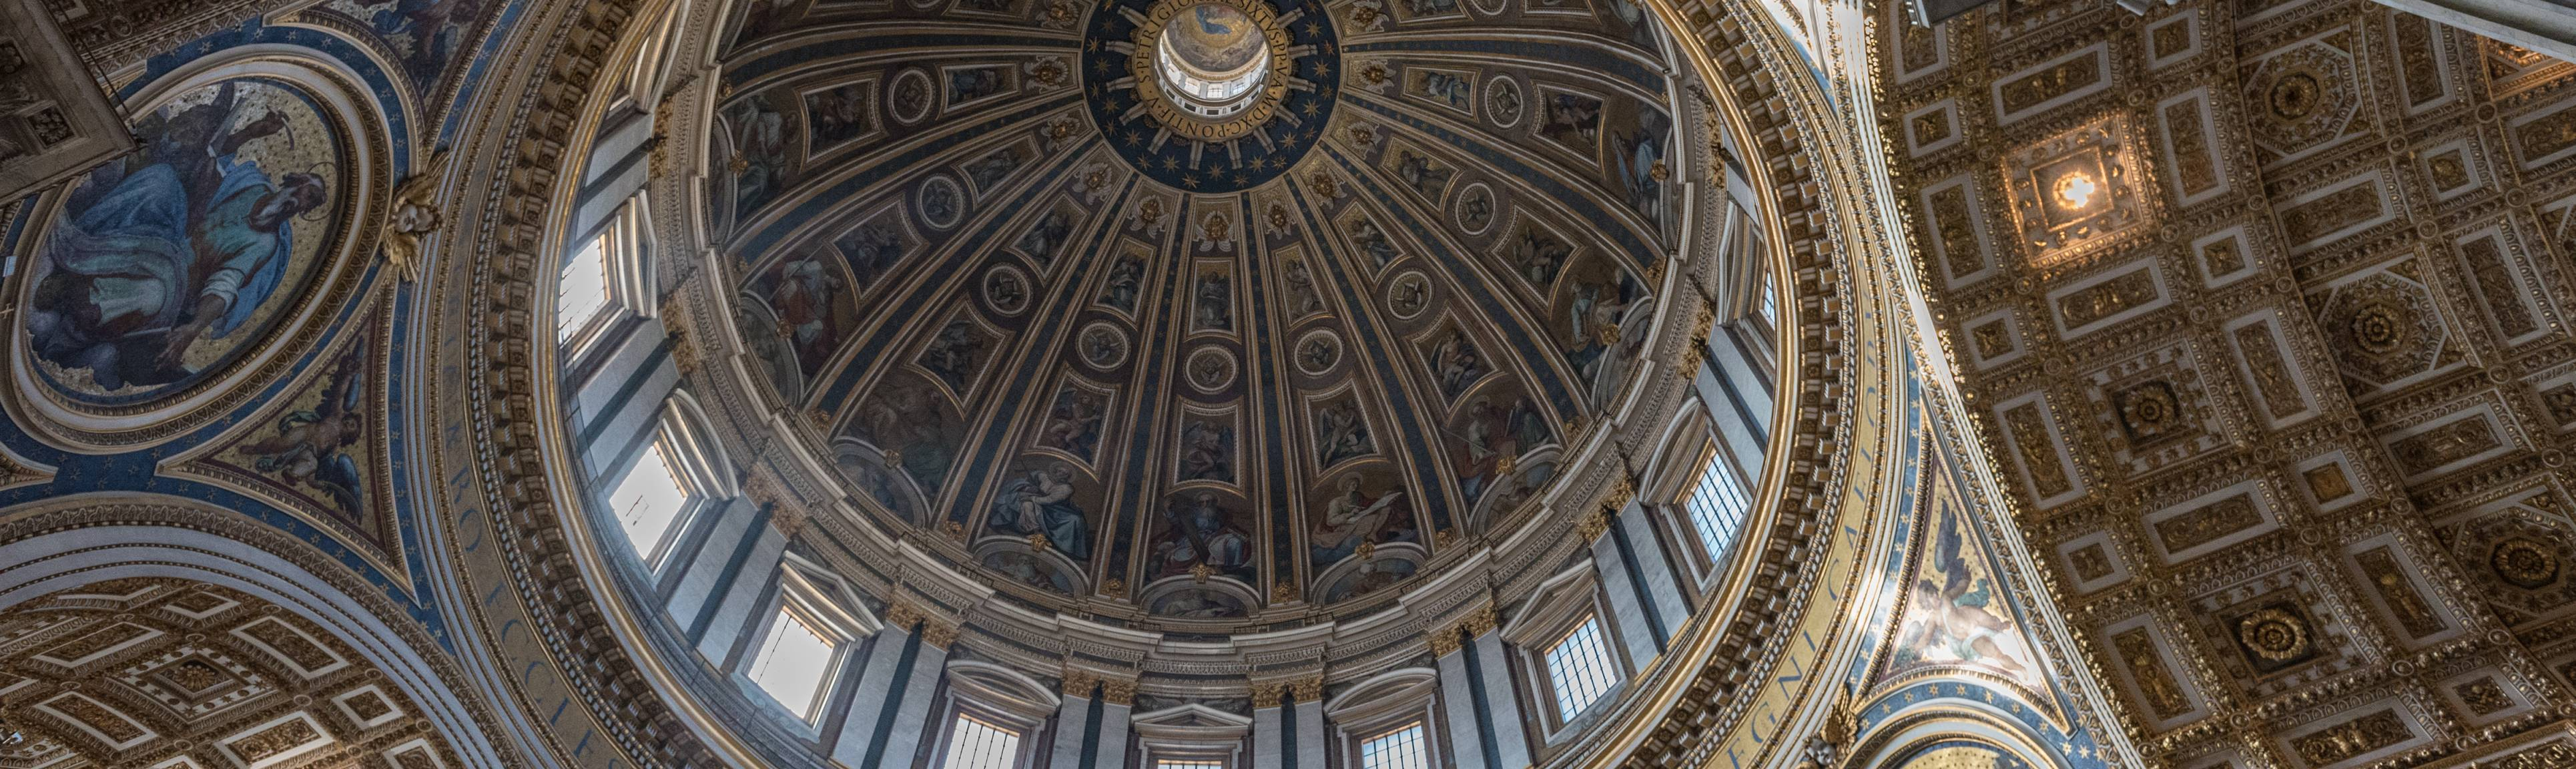 View of interior ceiling at the Vatican Museum in Rome